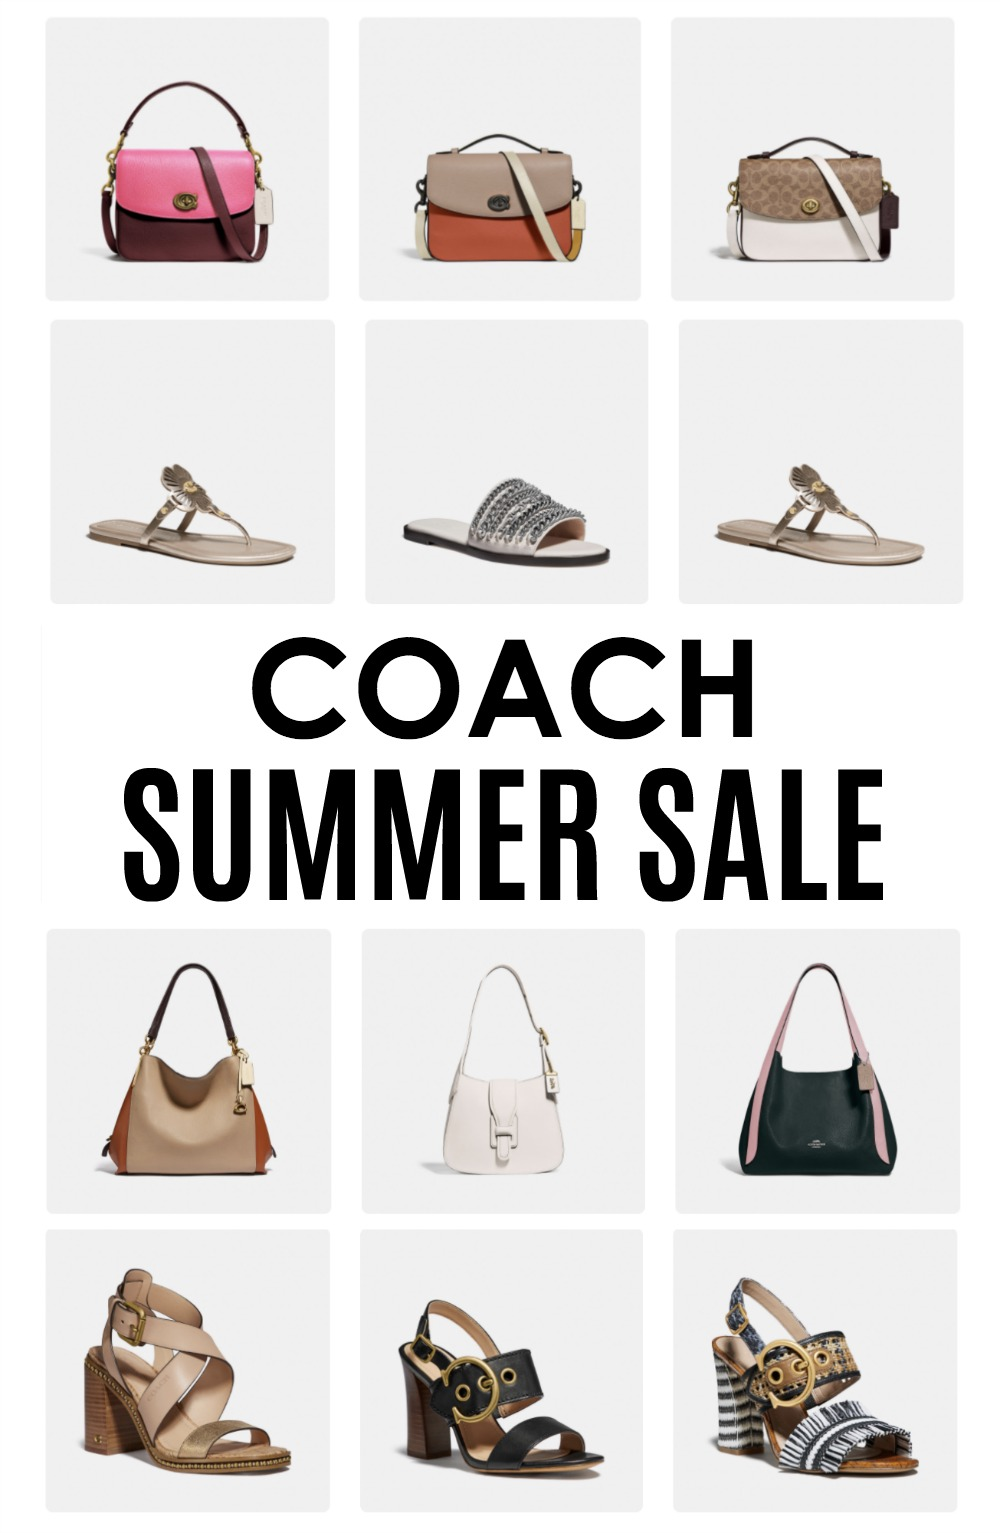 Coach Summer Sale 2020 I 50% off handbags, shoes and apparel! #fashionblog #summerstyle #Shopping